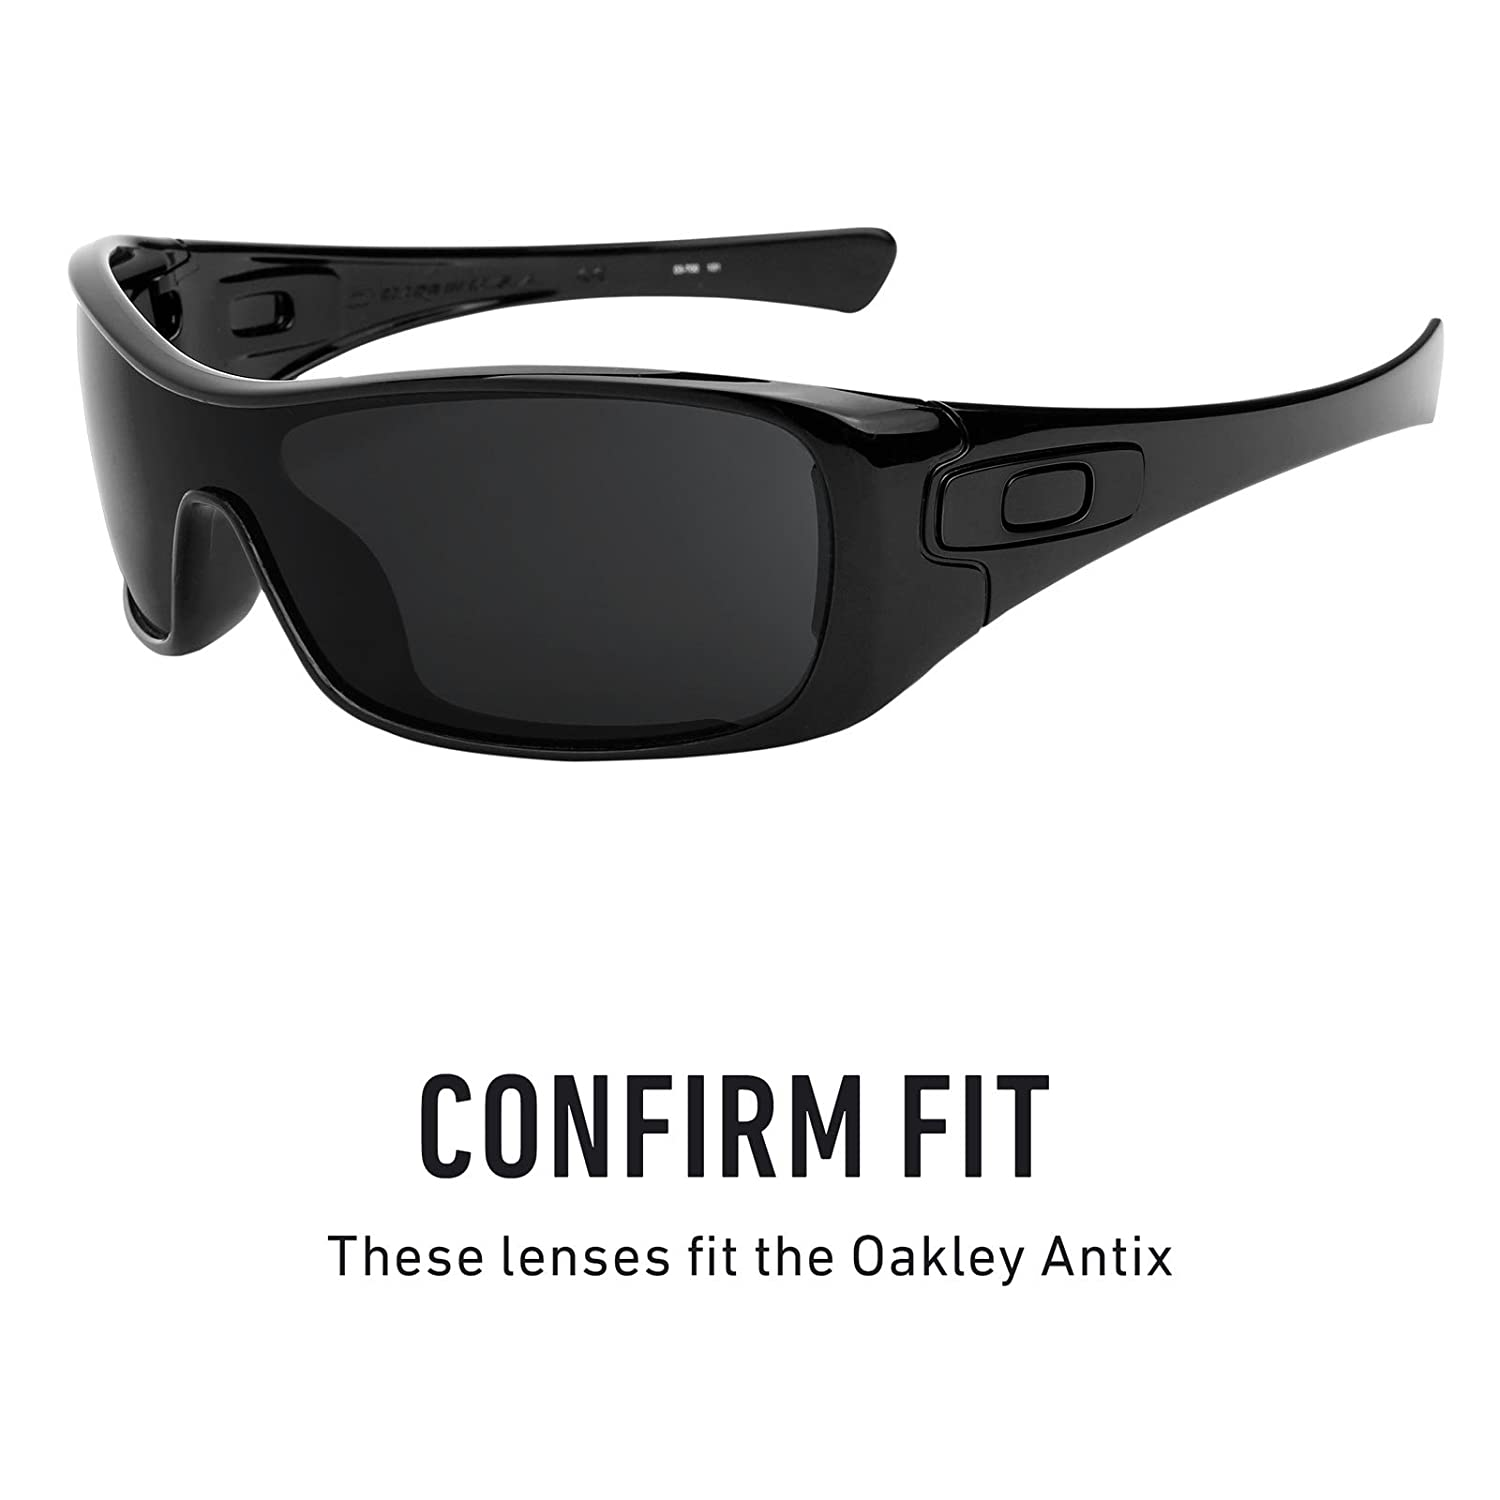 ae2f92b10fe Revant Replacement Lenses for Oakley Antix Black Chrome MirrorShield®   Amazon.co.uk  Clothing